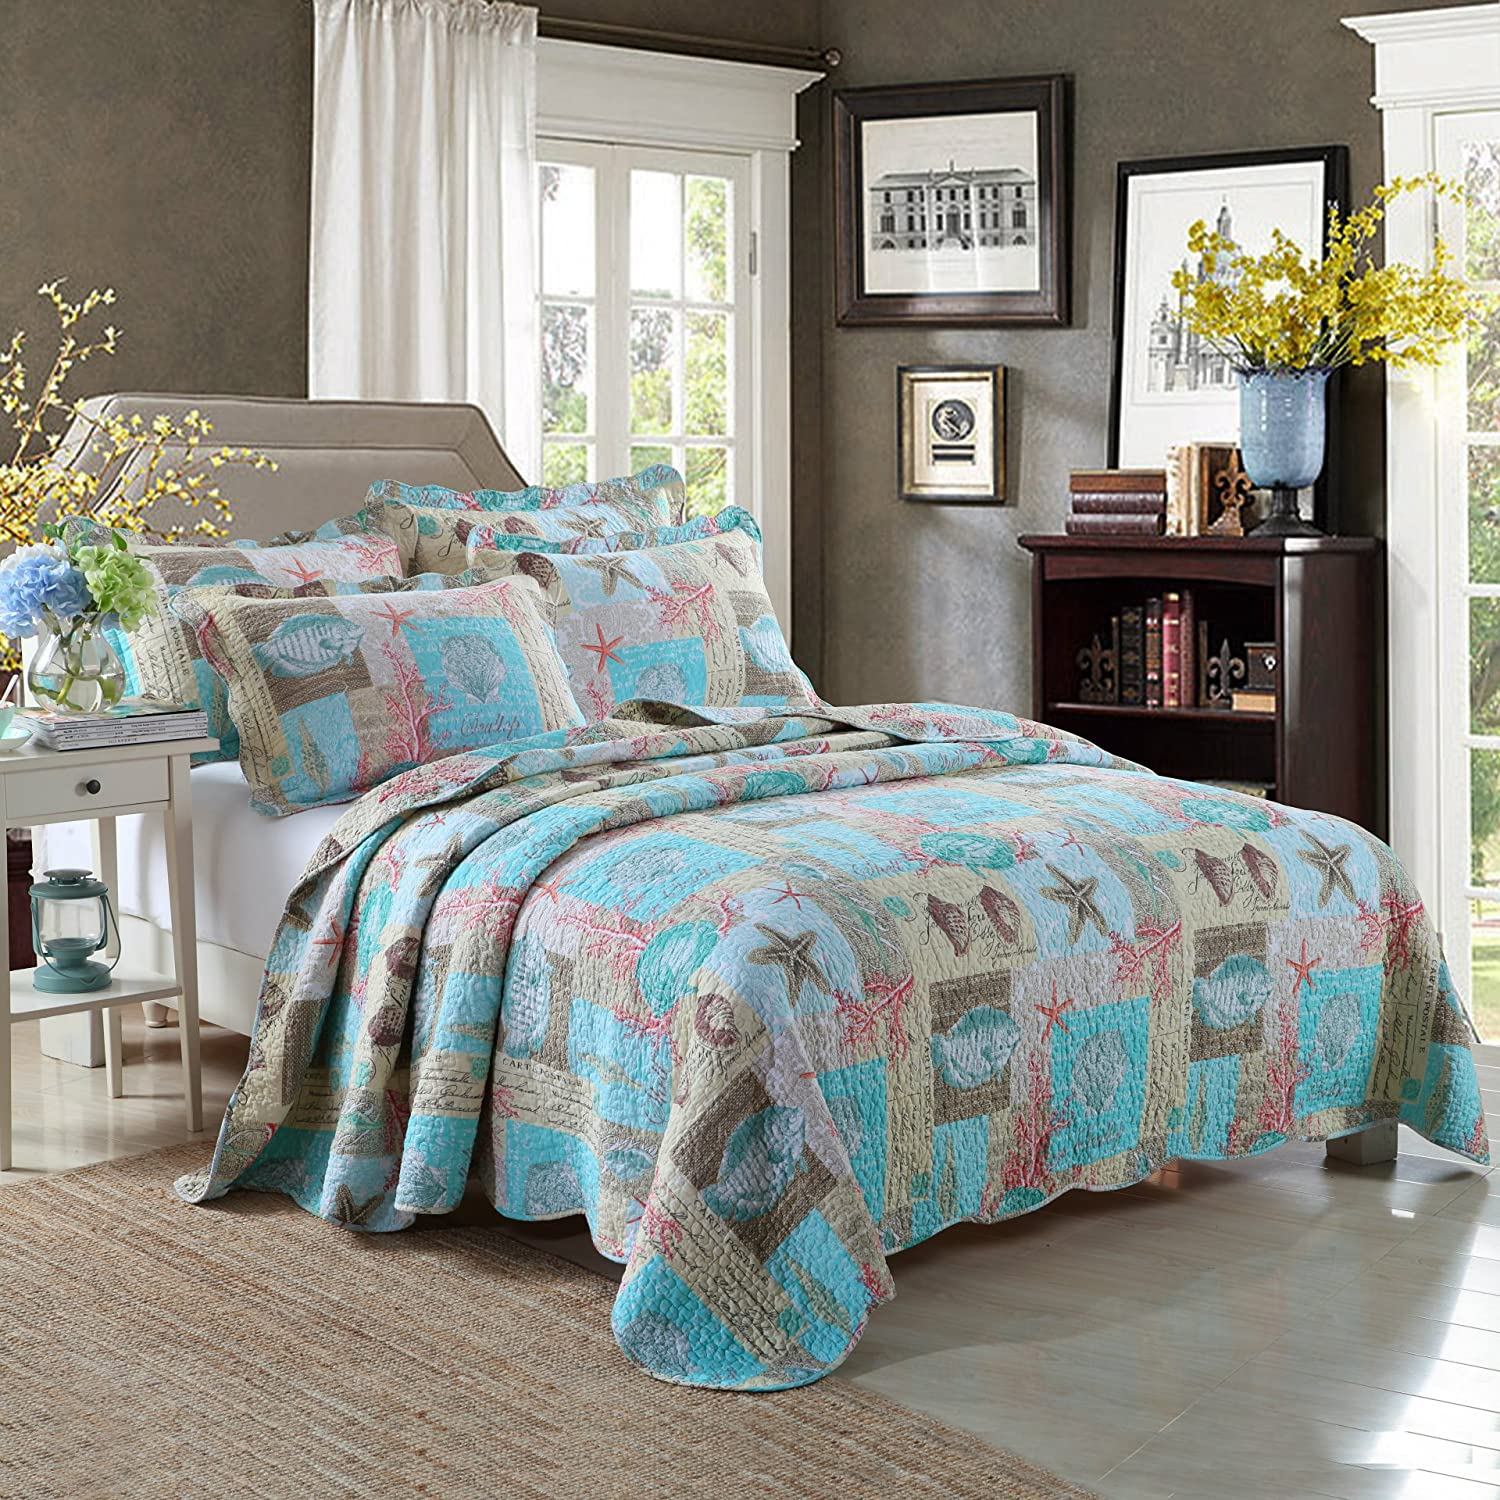 Linen House Australia are the leaders in Bed Linen, Quilt Cover Sets & Homewares. Shop our huge range of fashion quilt covers, sheets Online today!